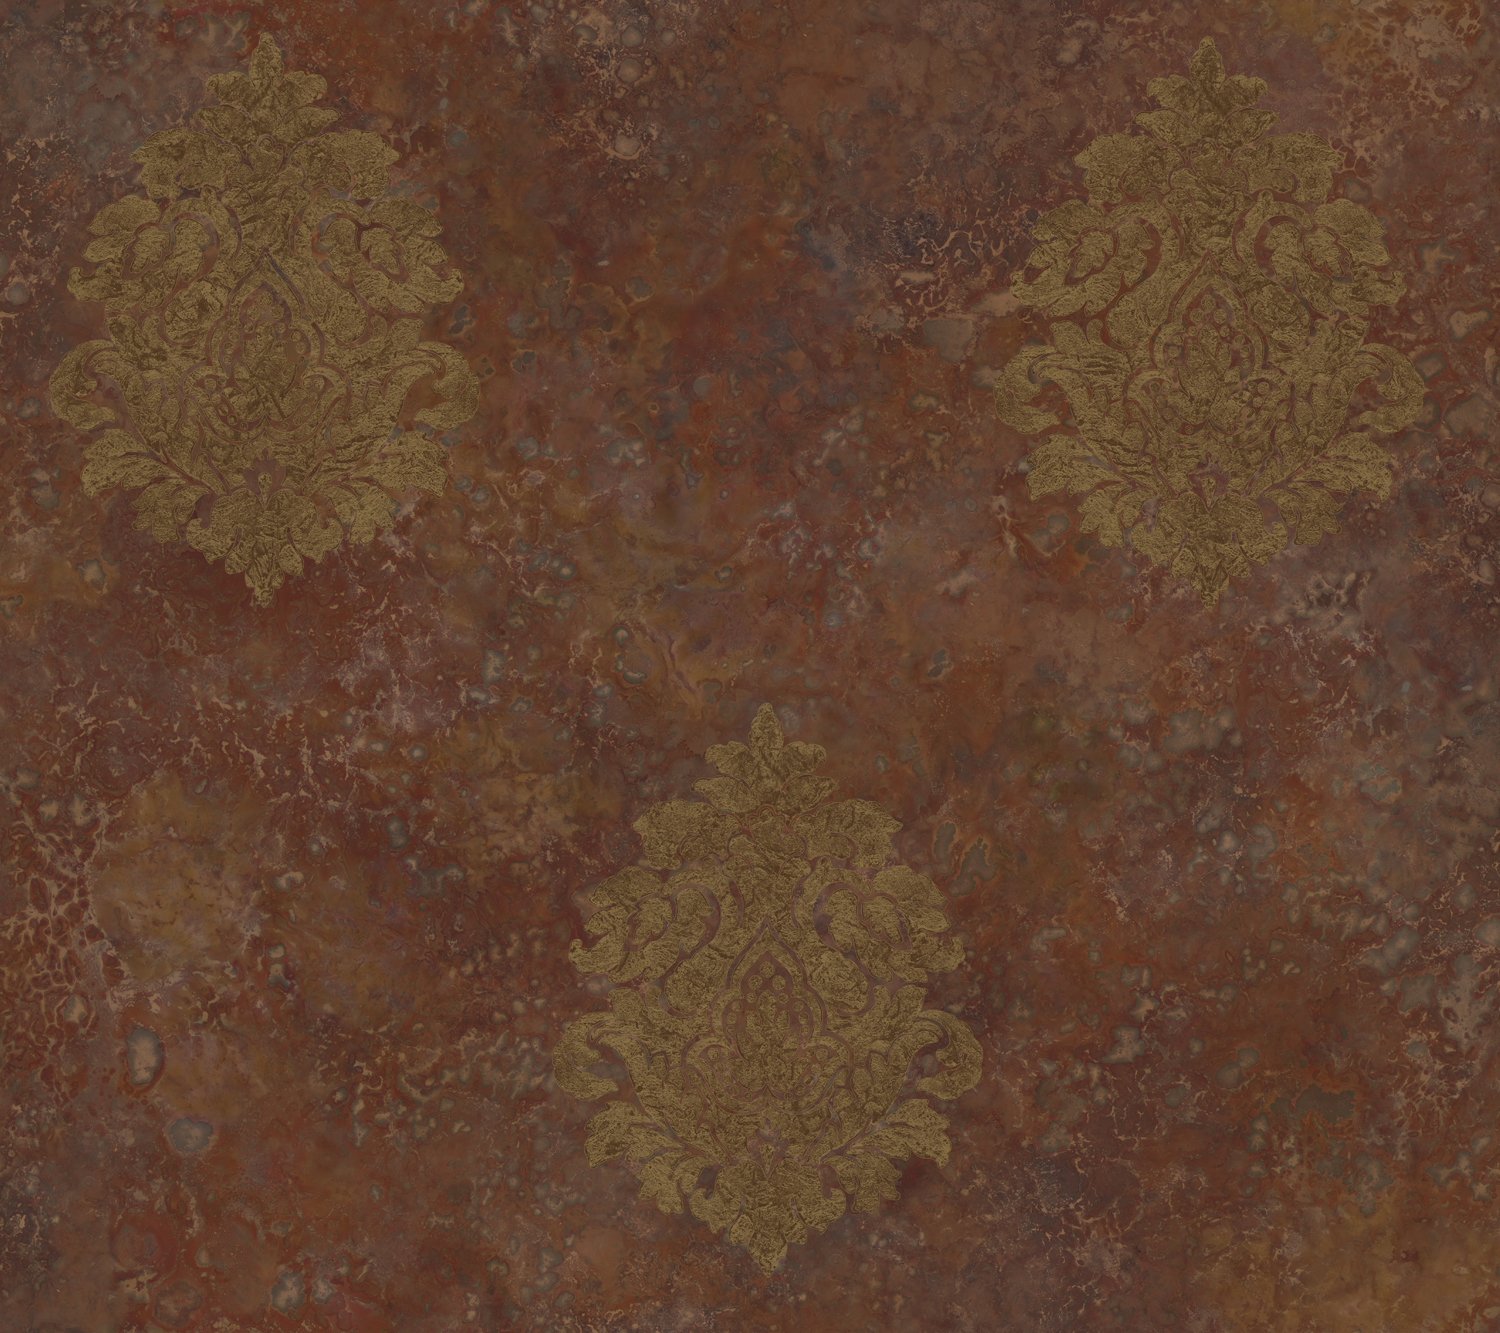 Picture of Baroque Damask Burnt Sienna Wallpaper